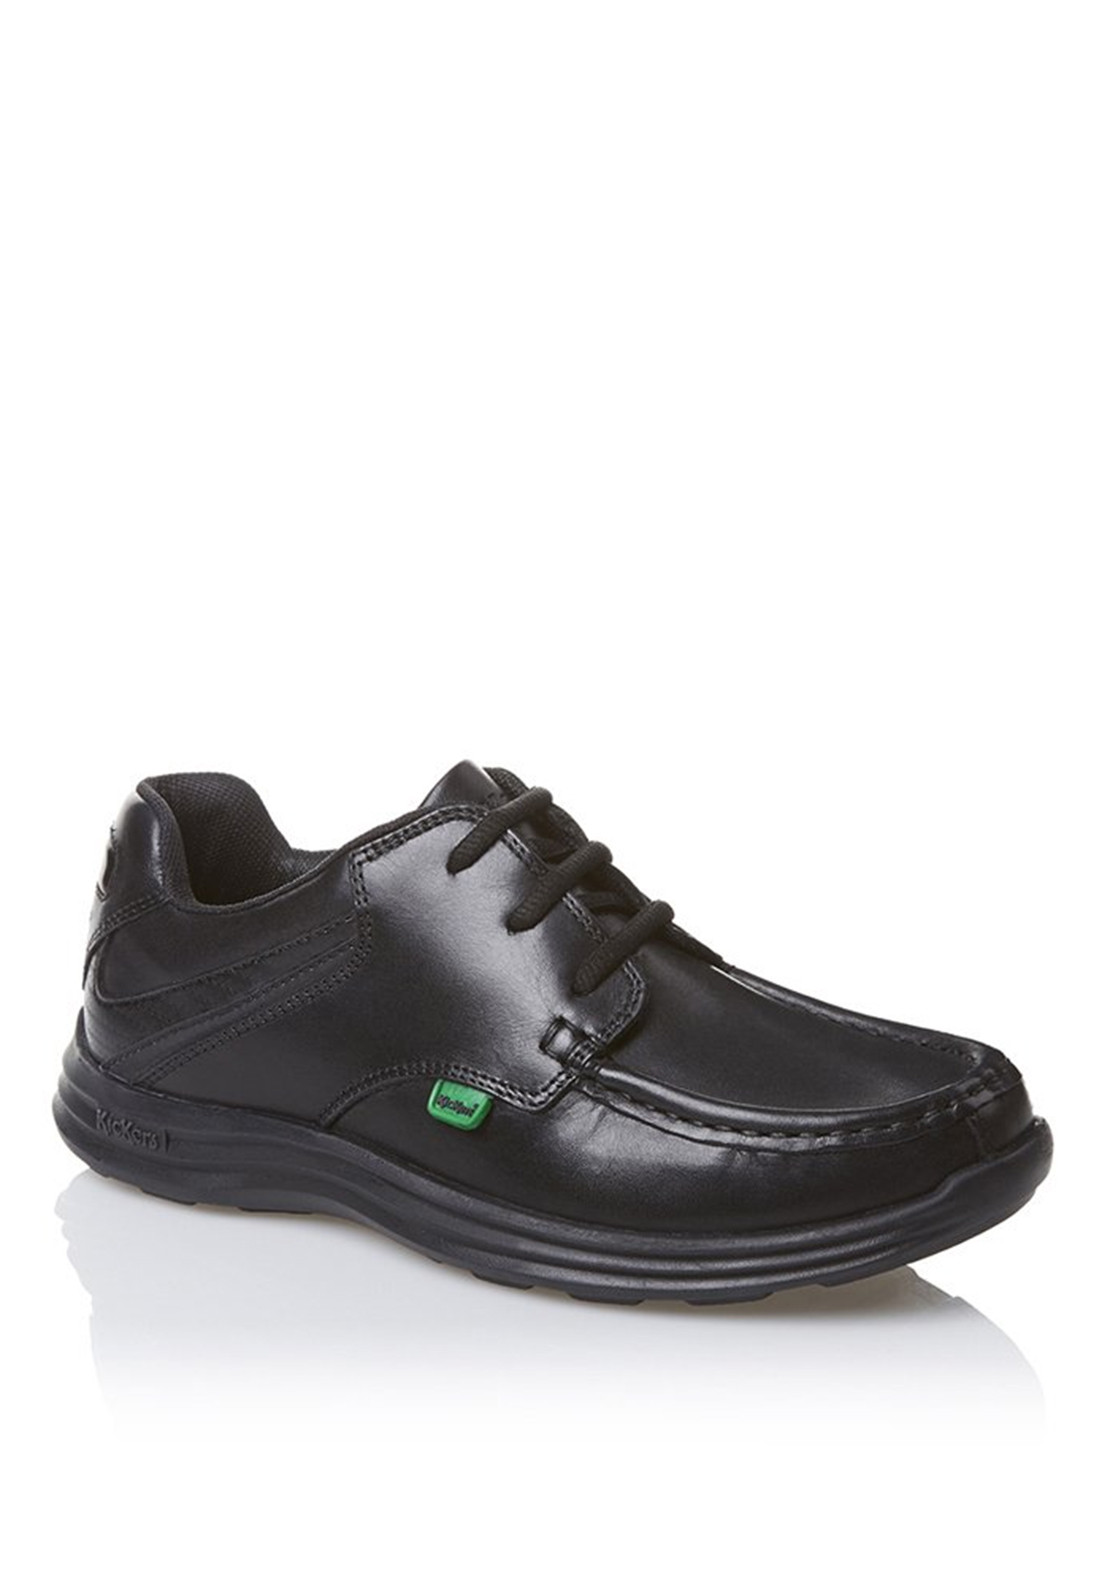 Kickers Reasan Lace up Leather Shoe, Black